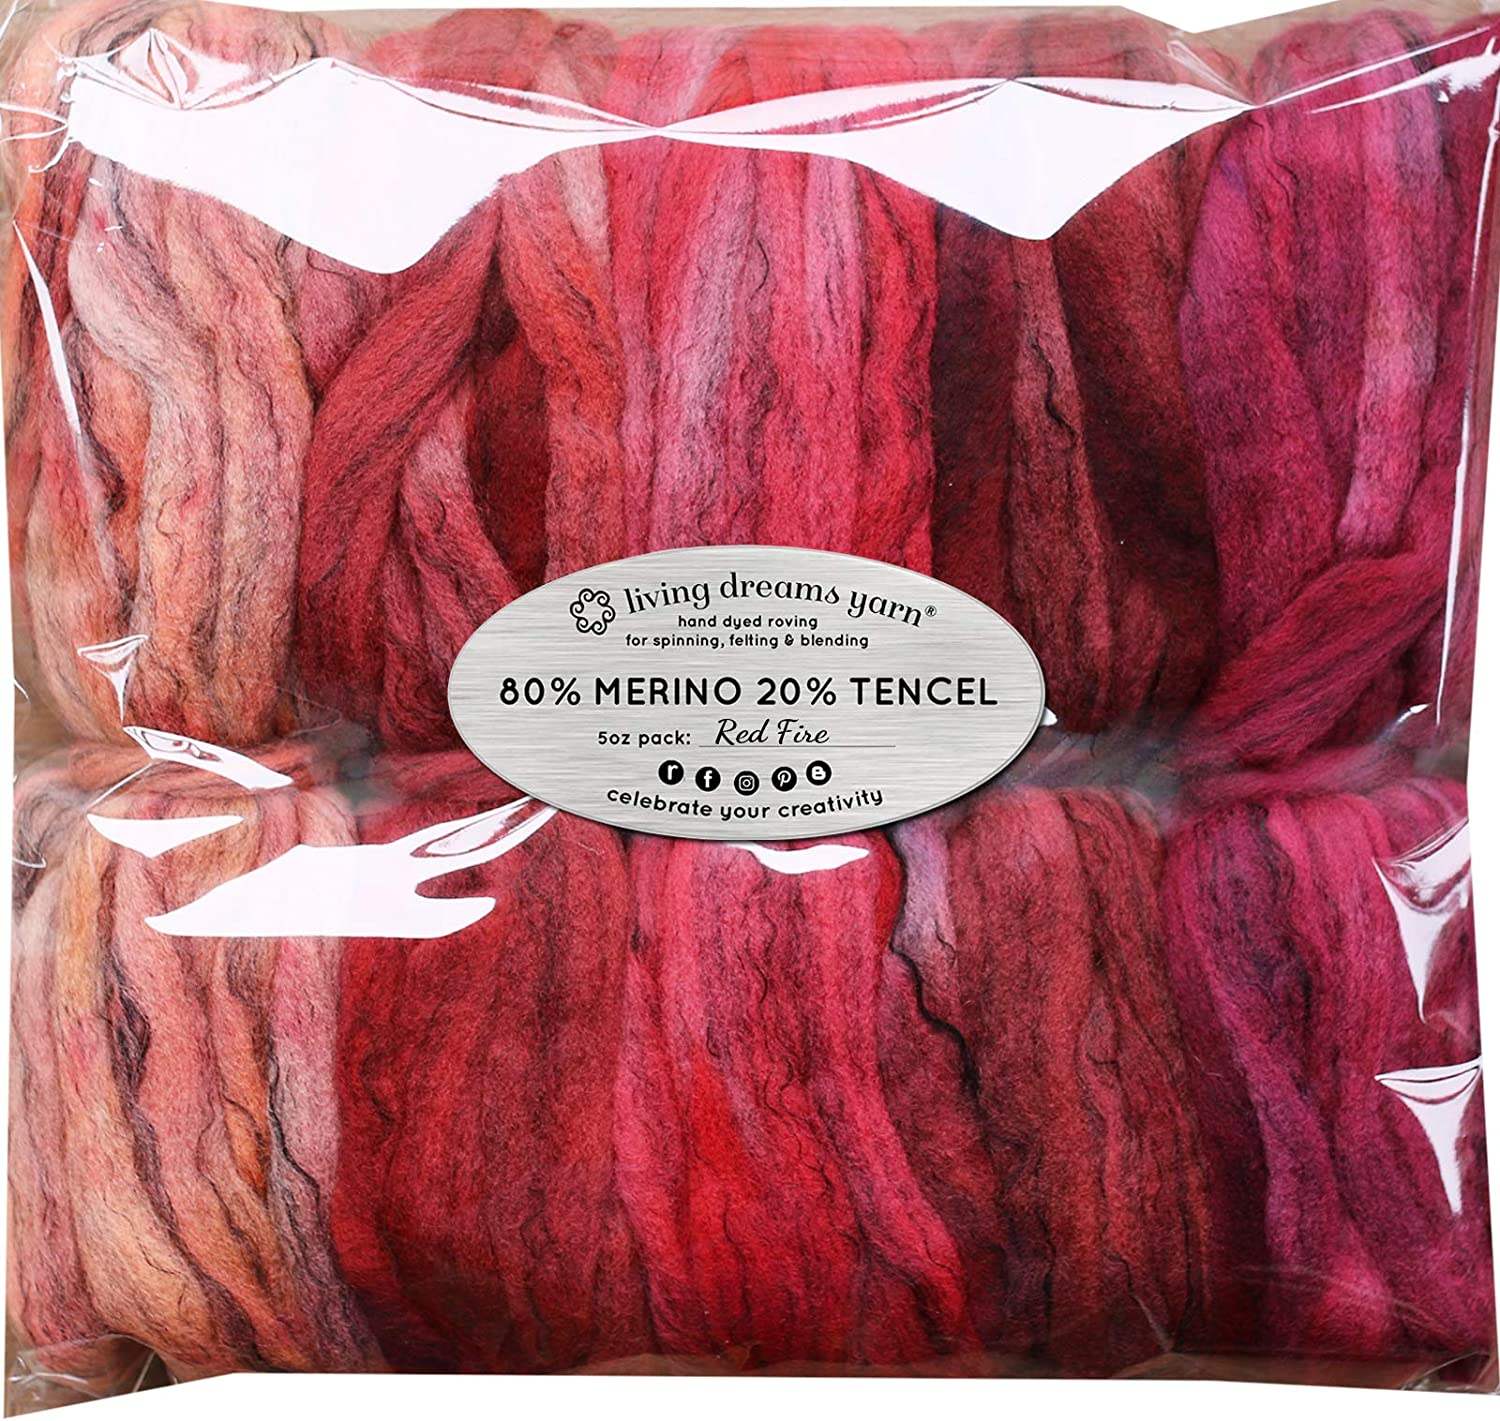 Felting Blending and Weaving HAND DYED Merino Tencel SPINNING FIBER 5 beautifully colored Mini Skeins DISCOUNT PACK Super Soft Wool Top Roving drafted for Hand Spinning Red Fire